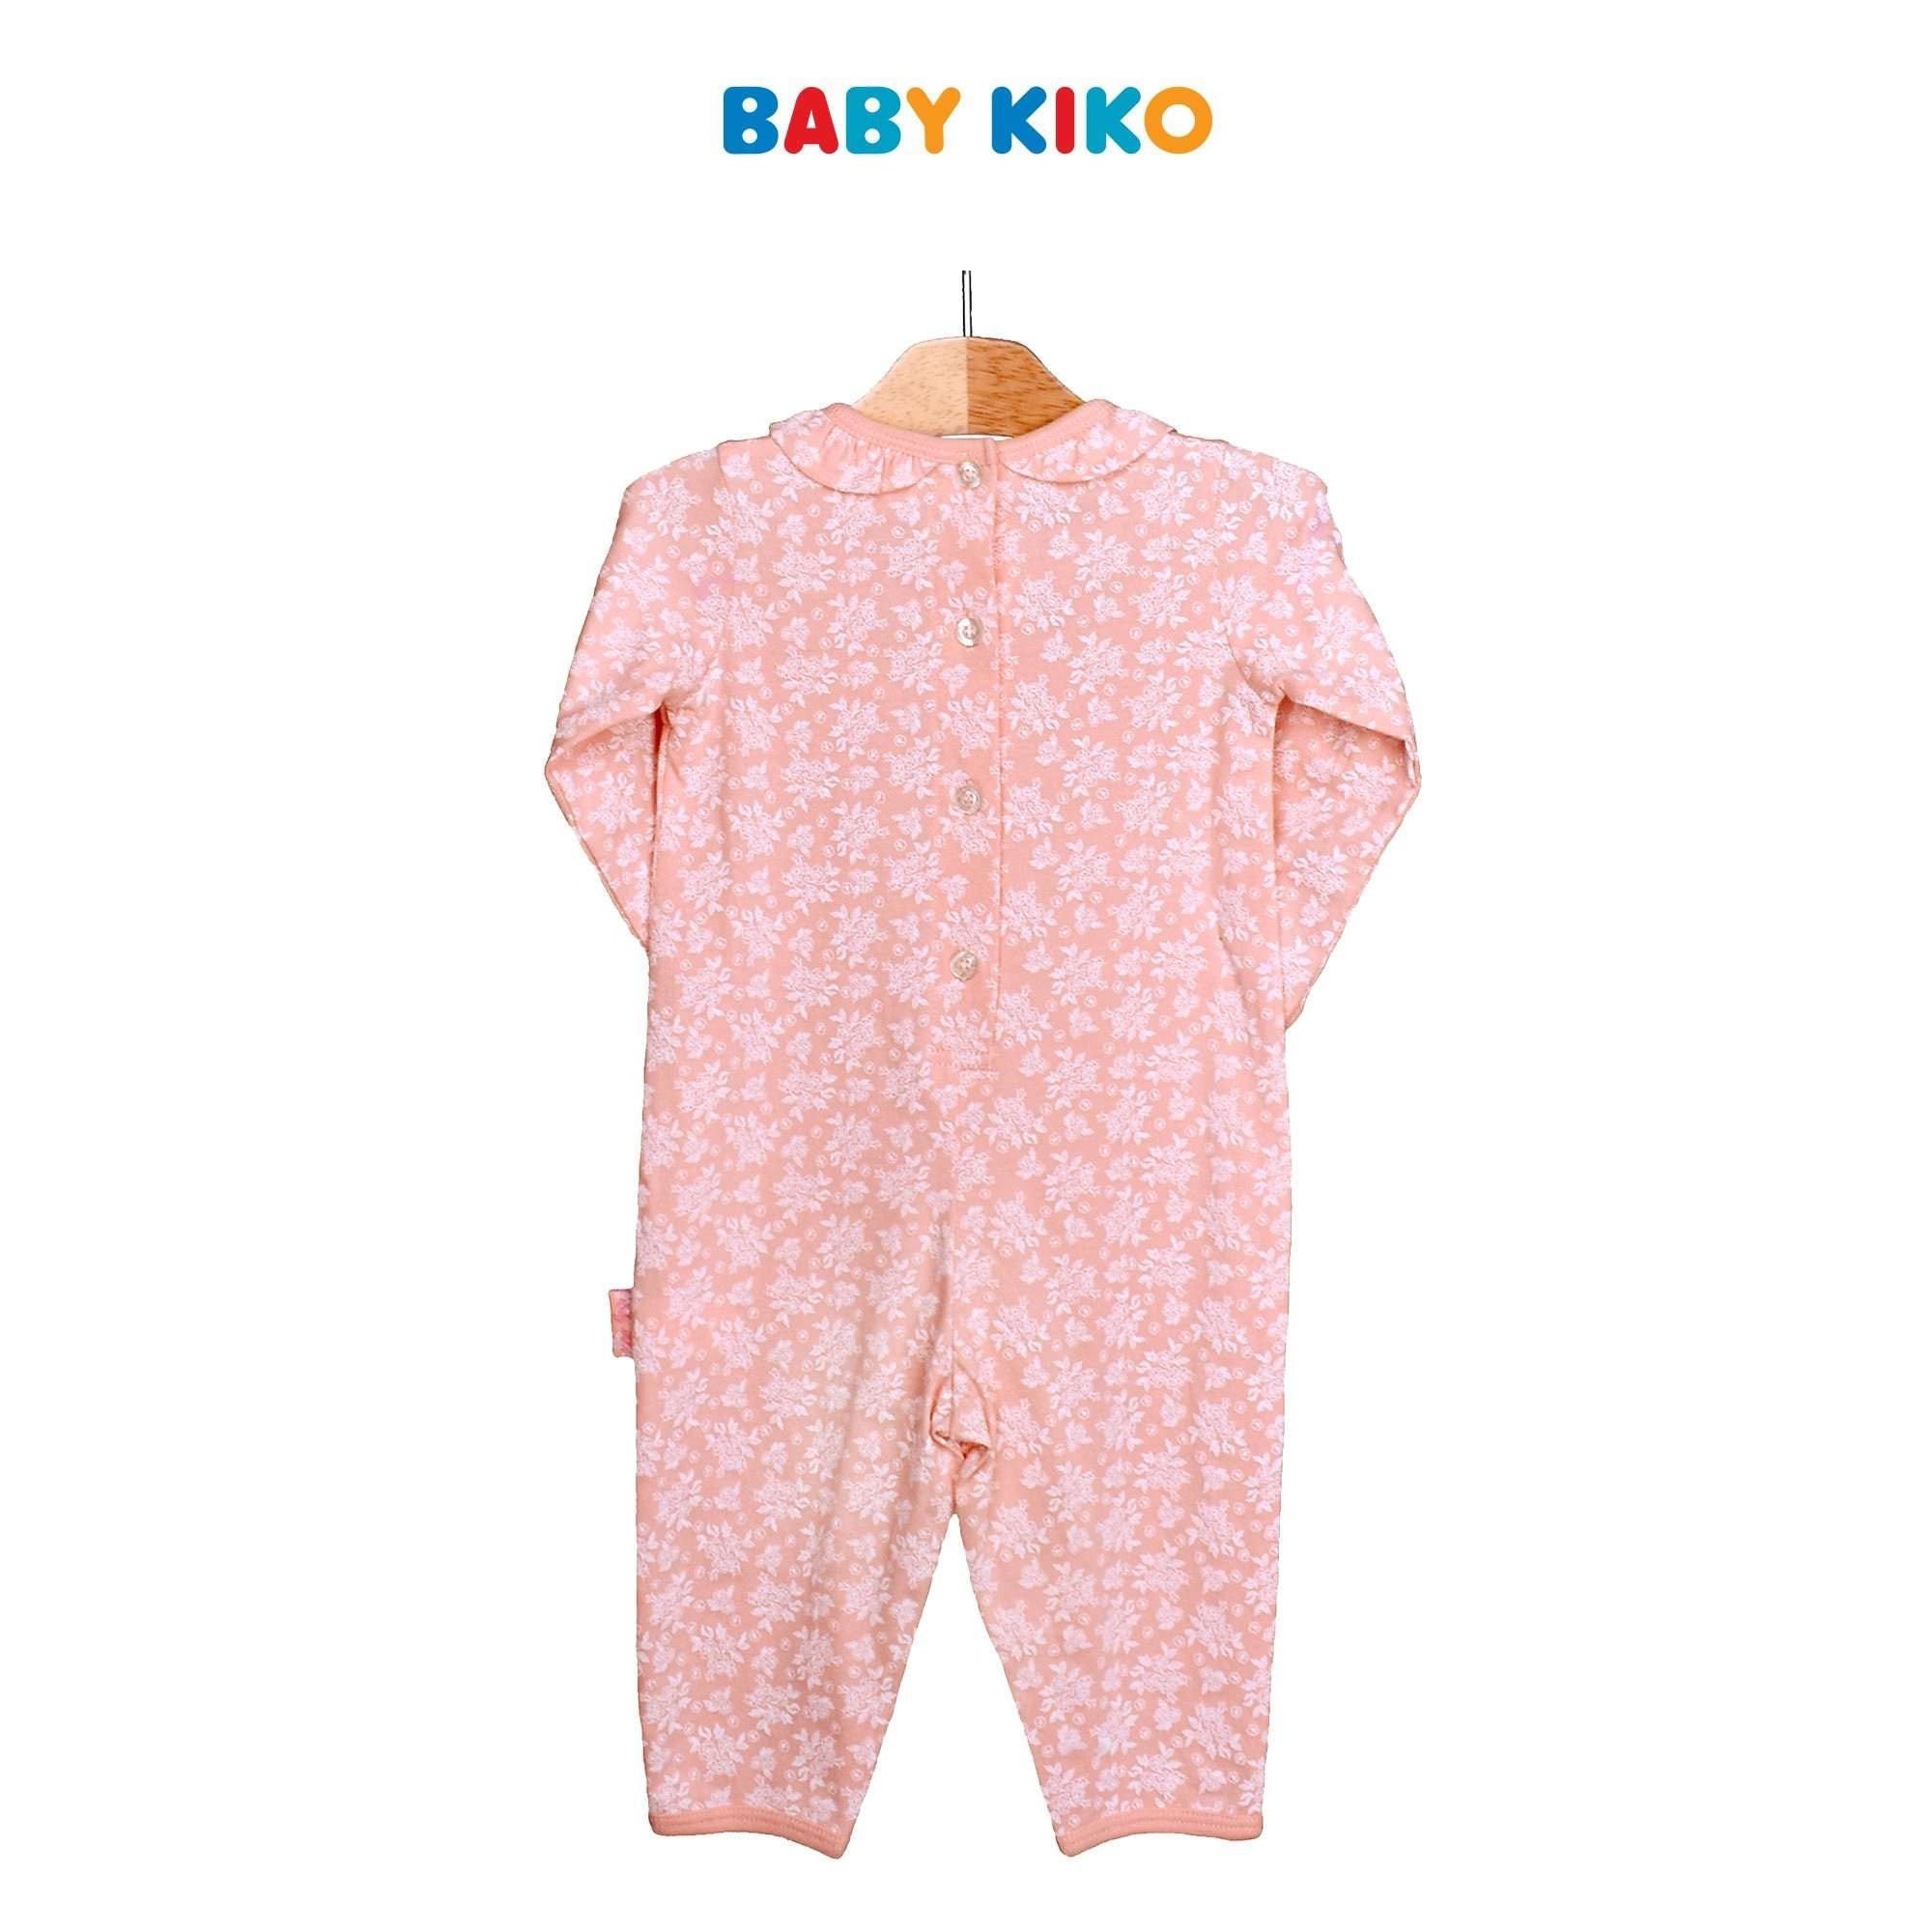 Baby KIKO Baby Girl Long Sleeve Romper-Floral Pink 310177-361 : Buy Baby KIKO online at CMG.MY